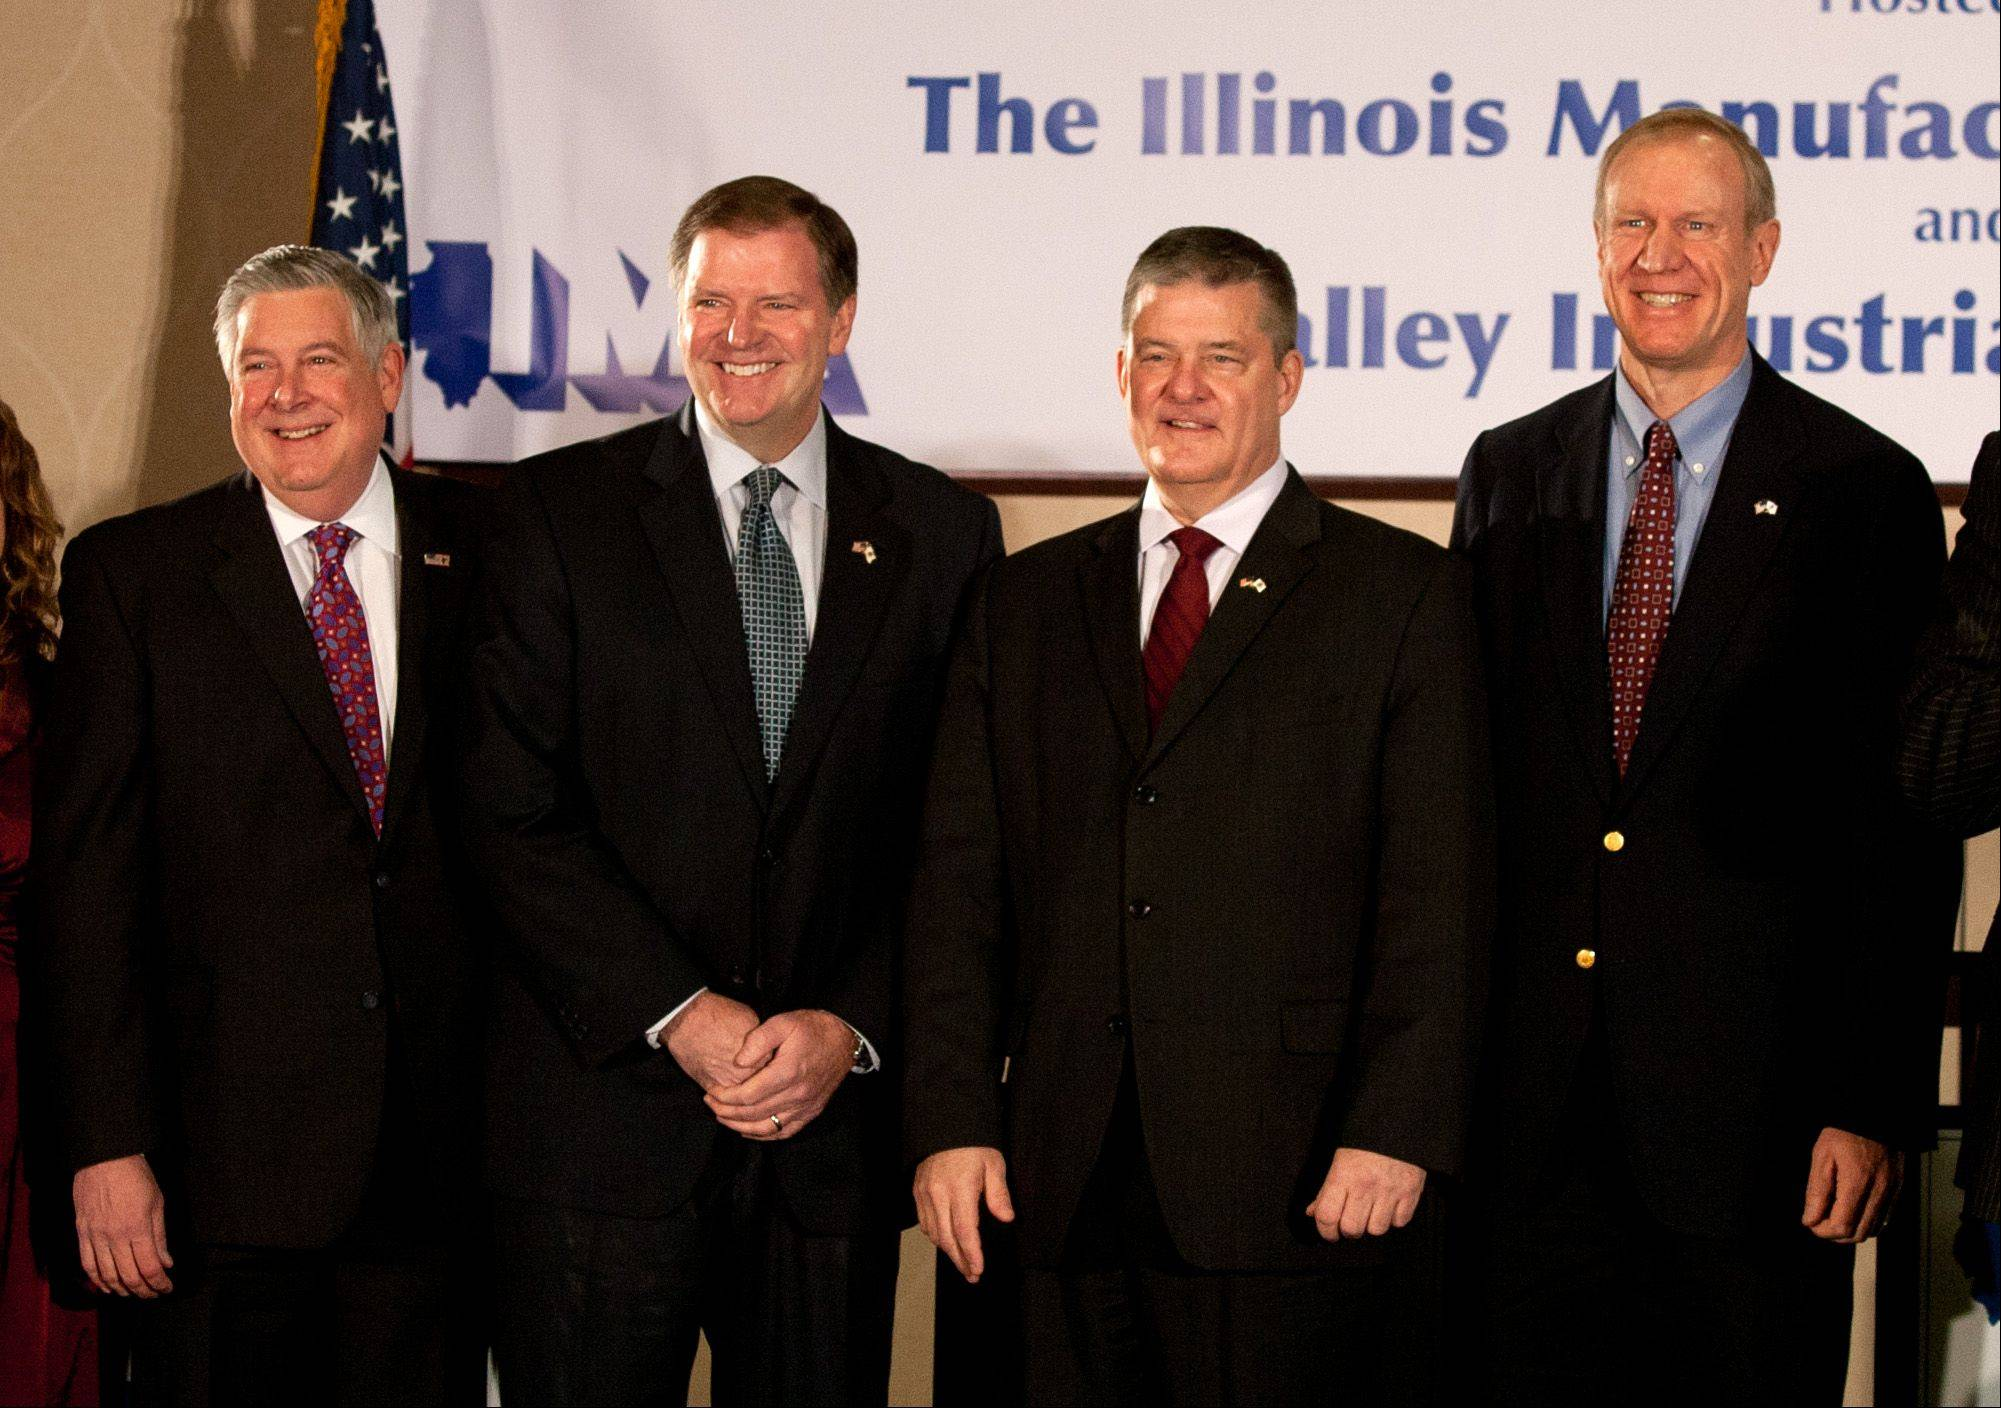 Taxes, not misconduct claims, top GOP governor debate in Naperville